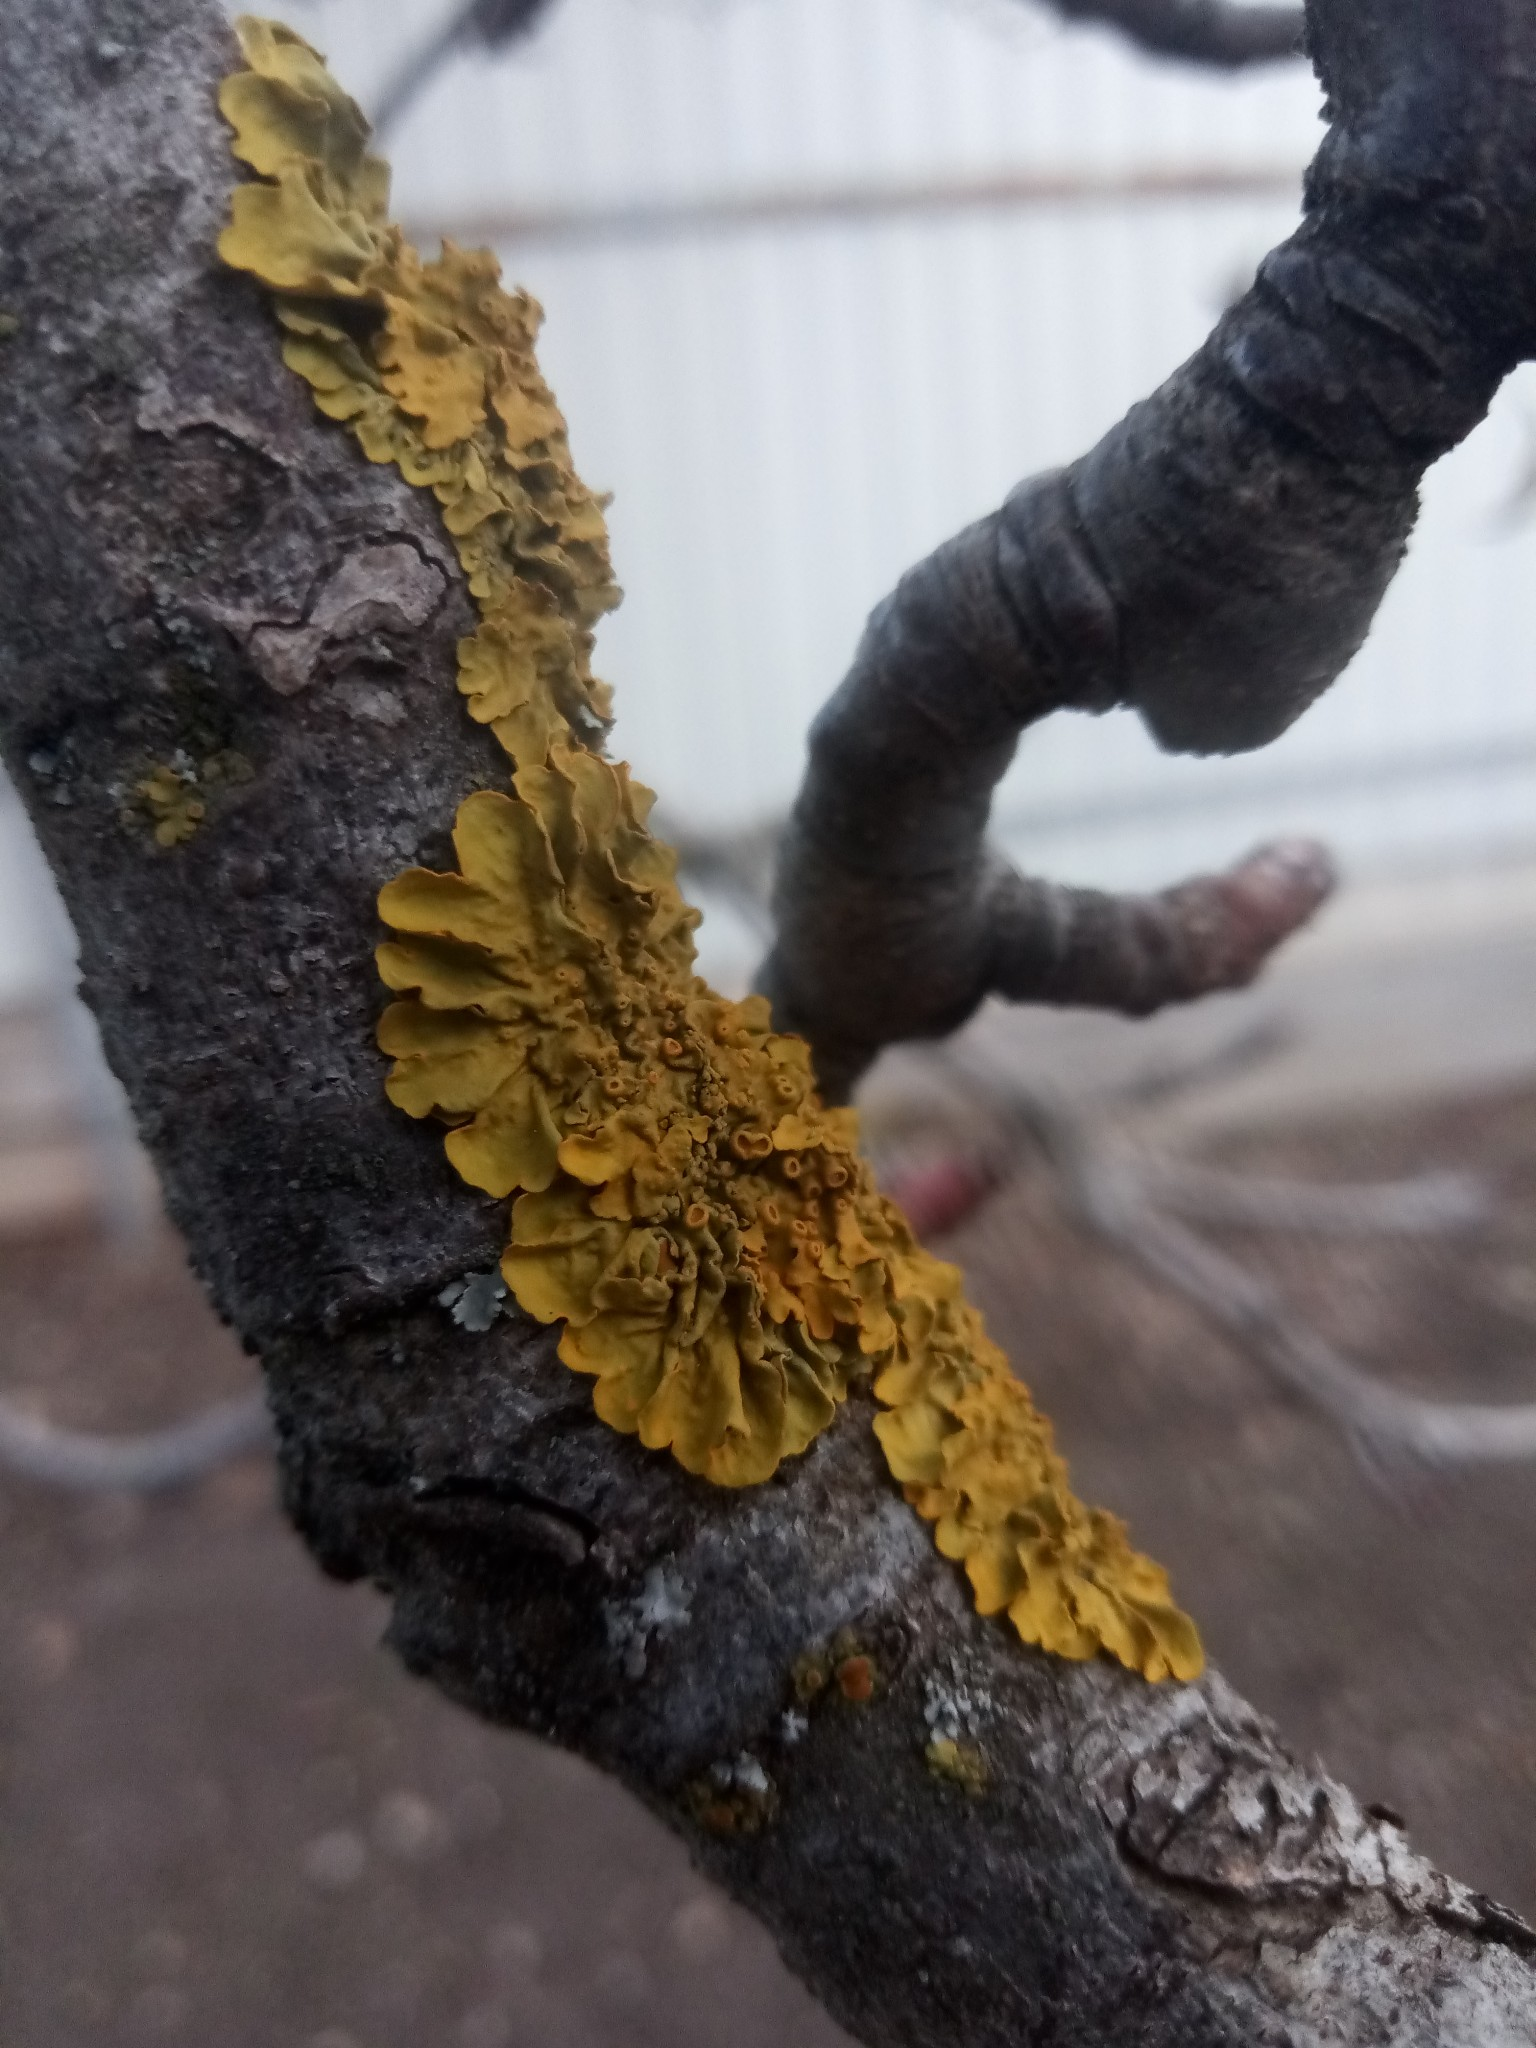 Tree fungus photo